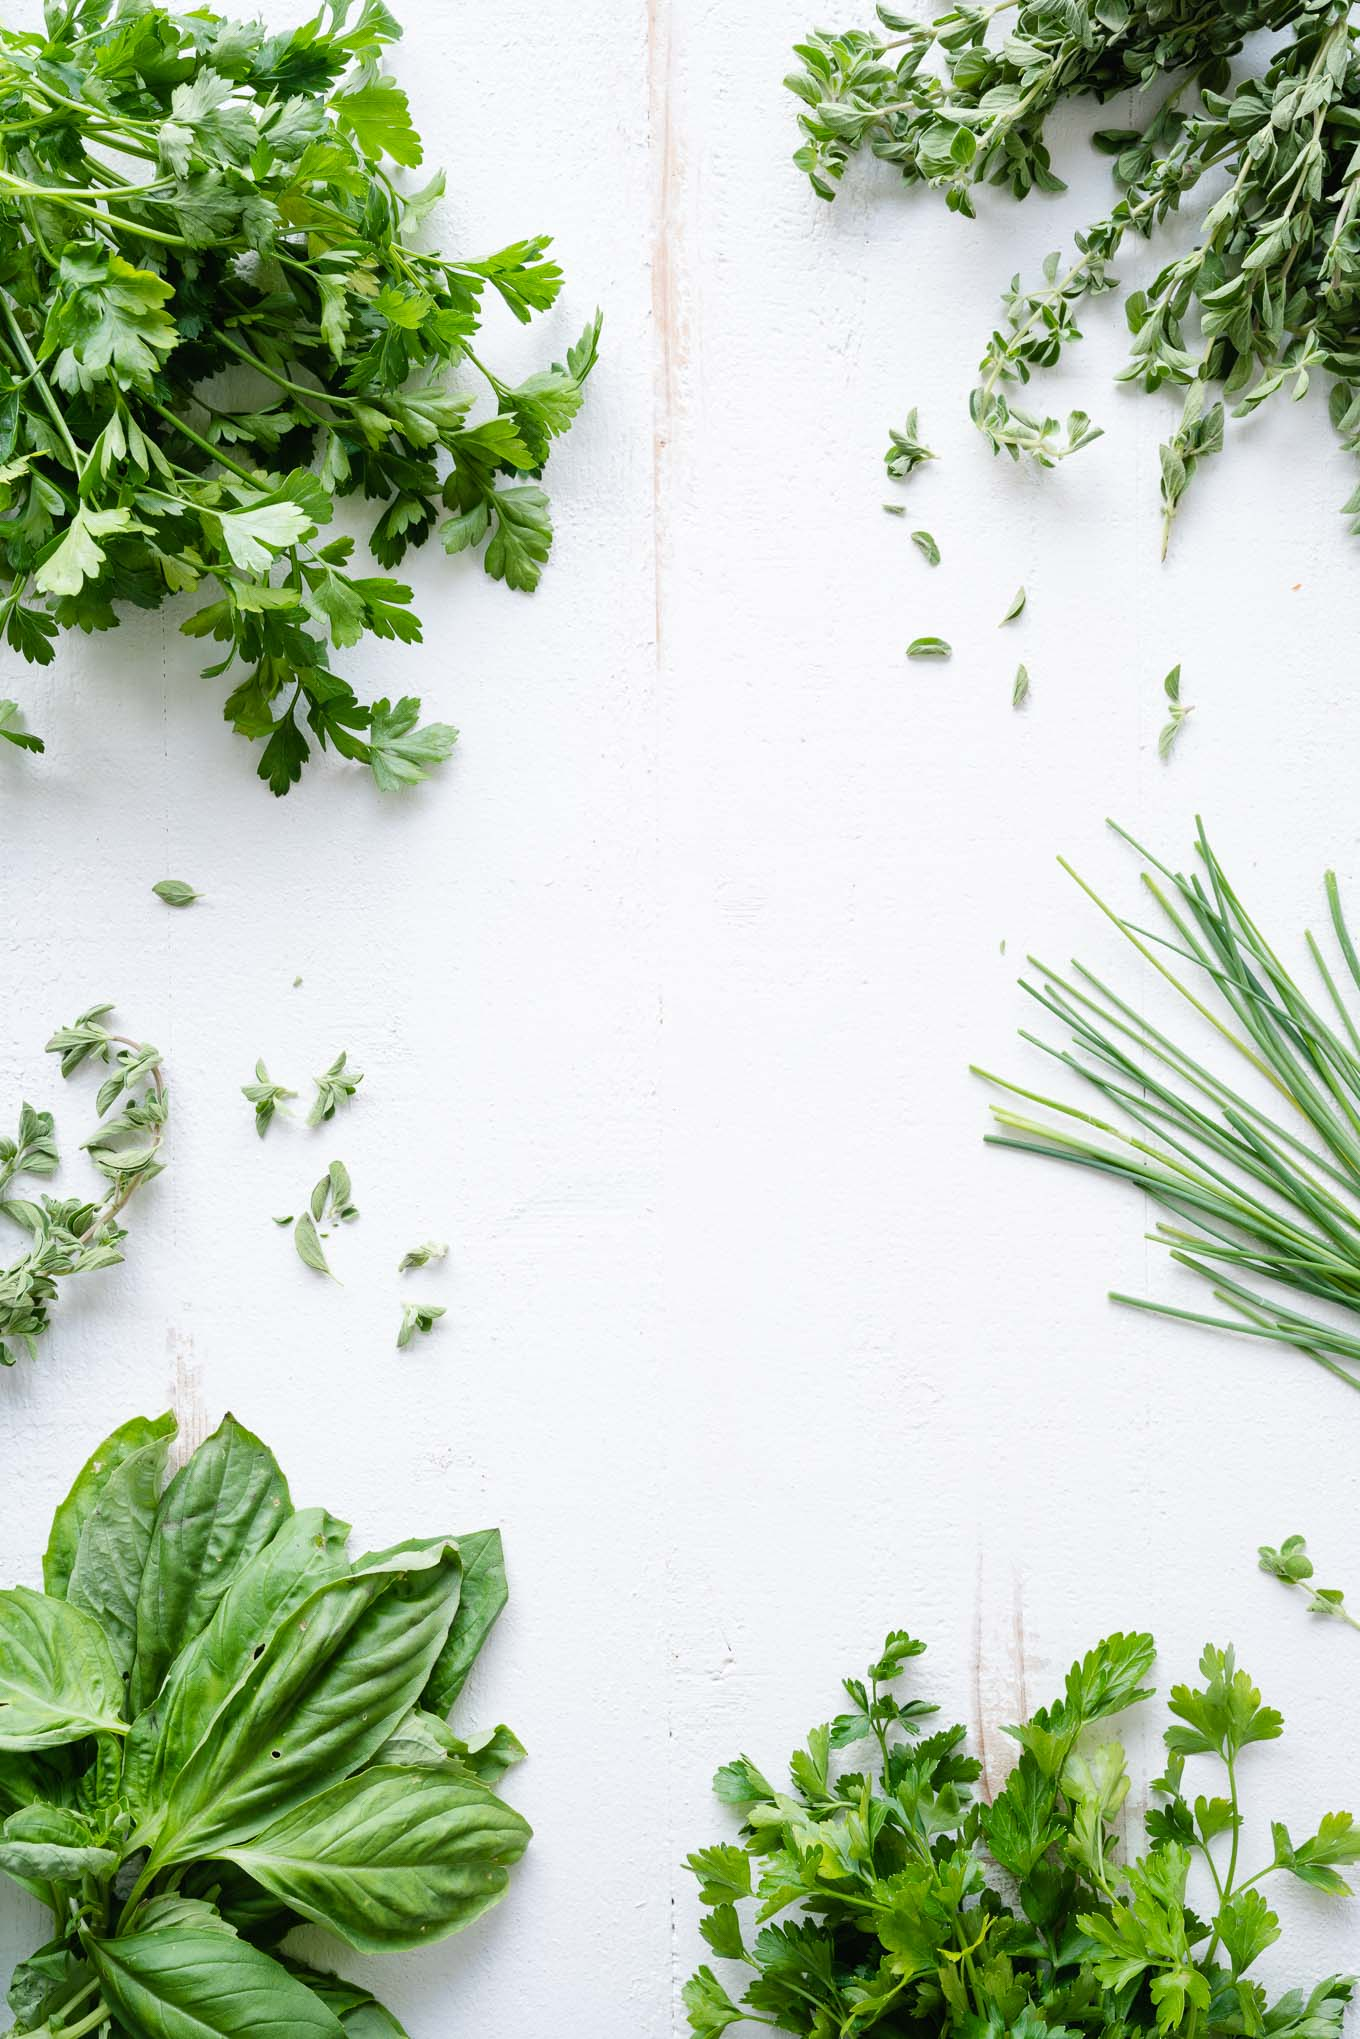 Parsley Oregano Chives Basil on White Board